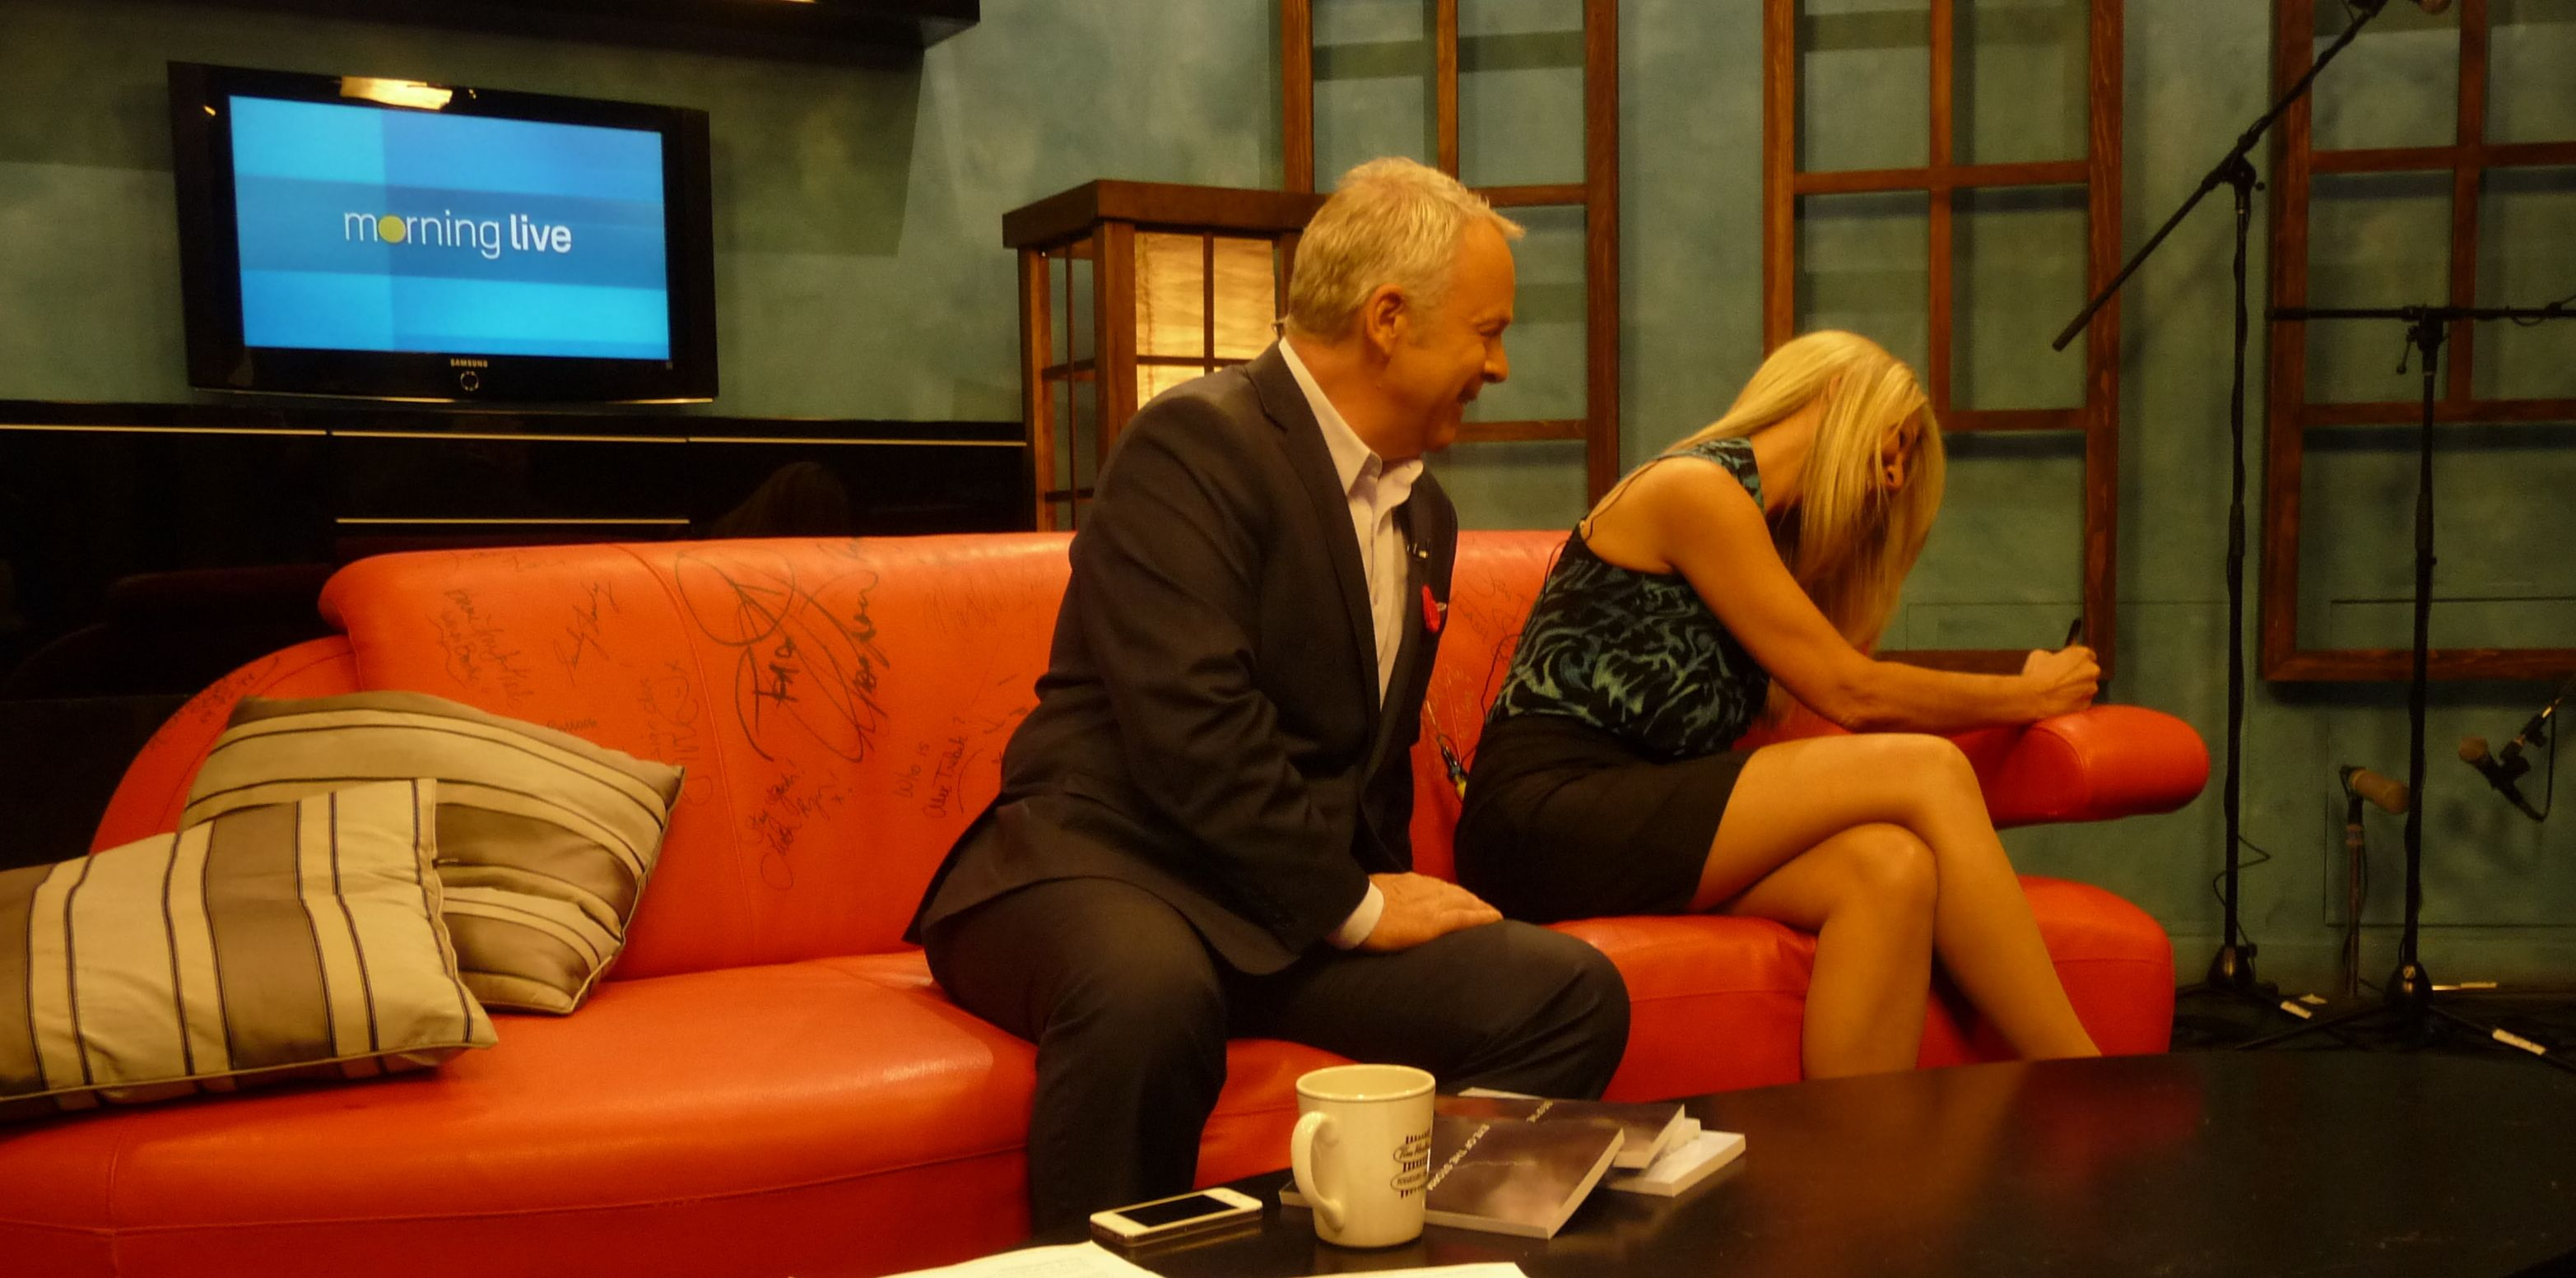 Signing the Celebrity Couch during a morning news show